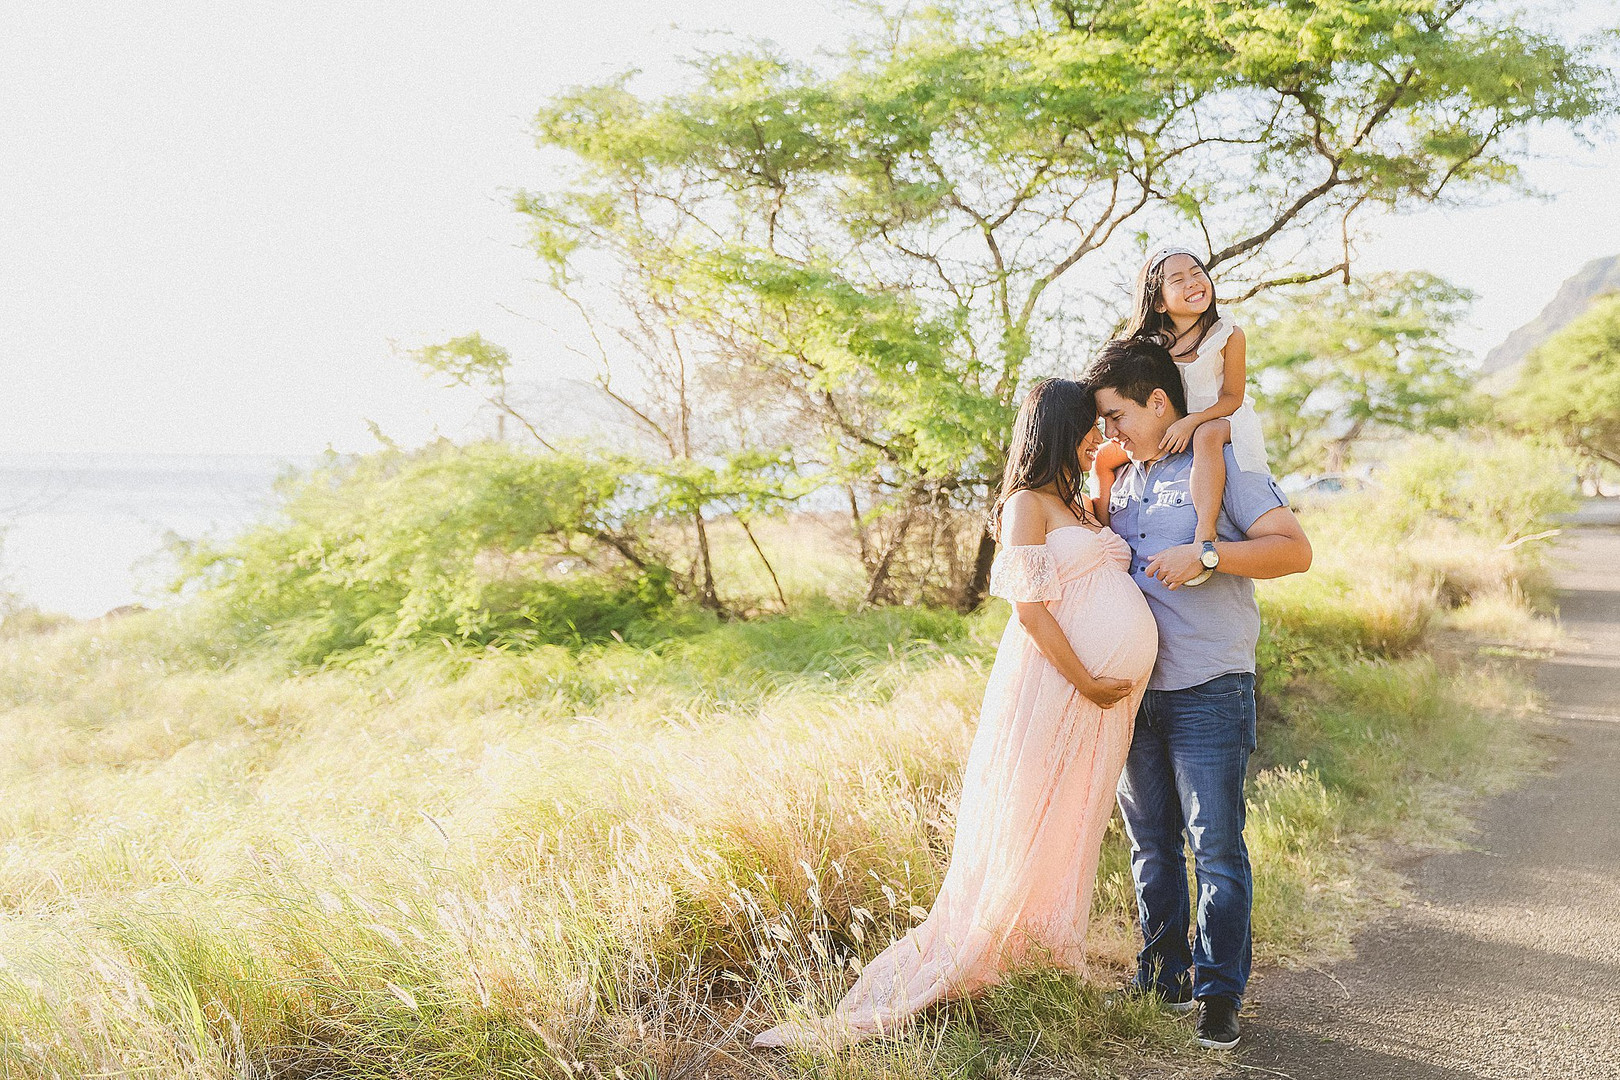 Hawaii-Maternity-Photographer-Photograph